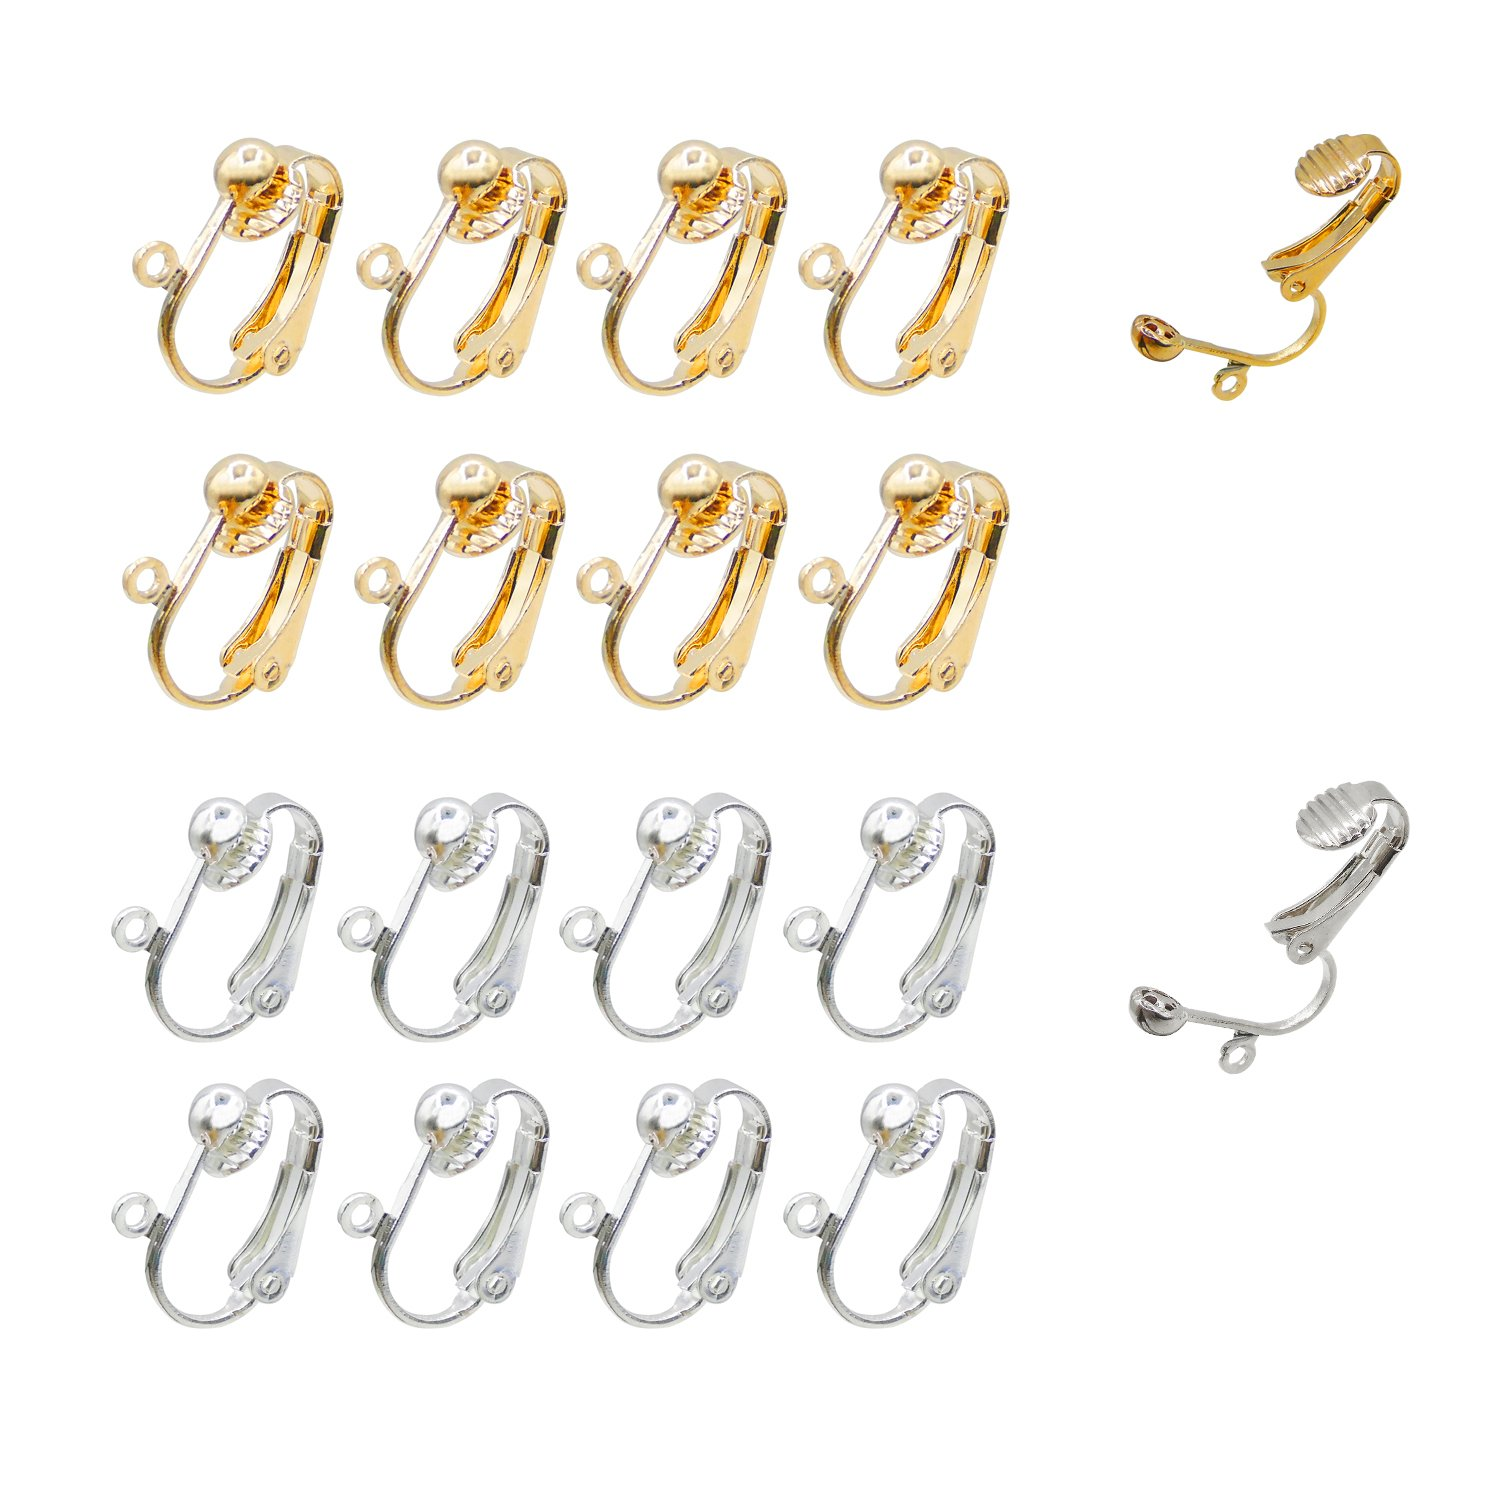 40pcs Clip on Earring Converter with Easy Open Loop, Granmp Clip Earring Findings for Jewelry Making Clip on Earrings for Crafts, Silver Gold 4336827656